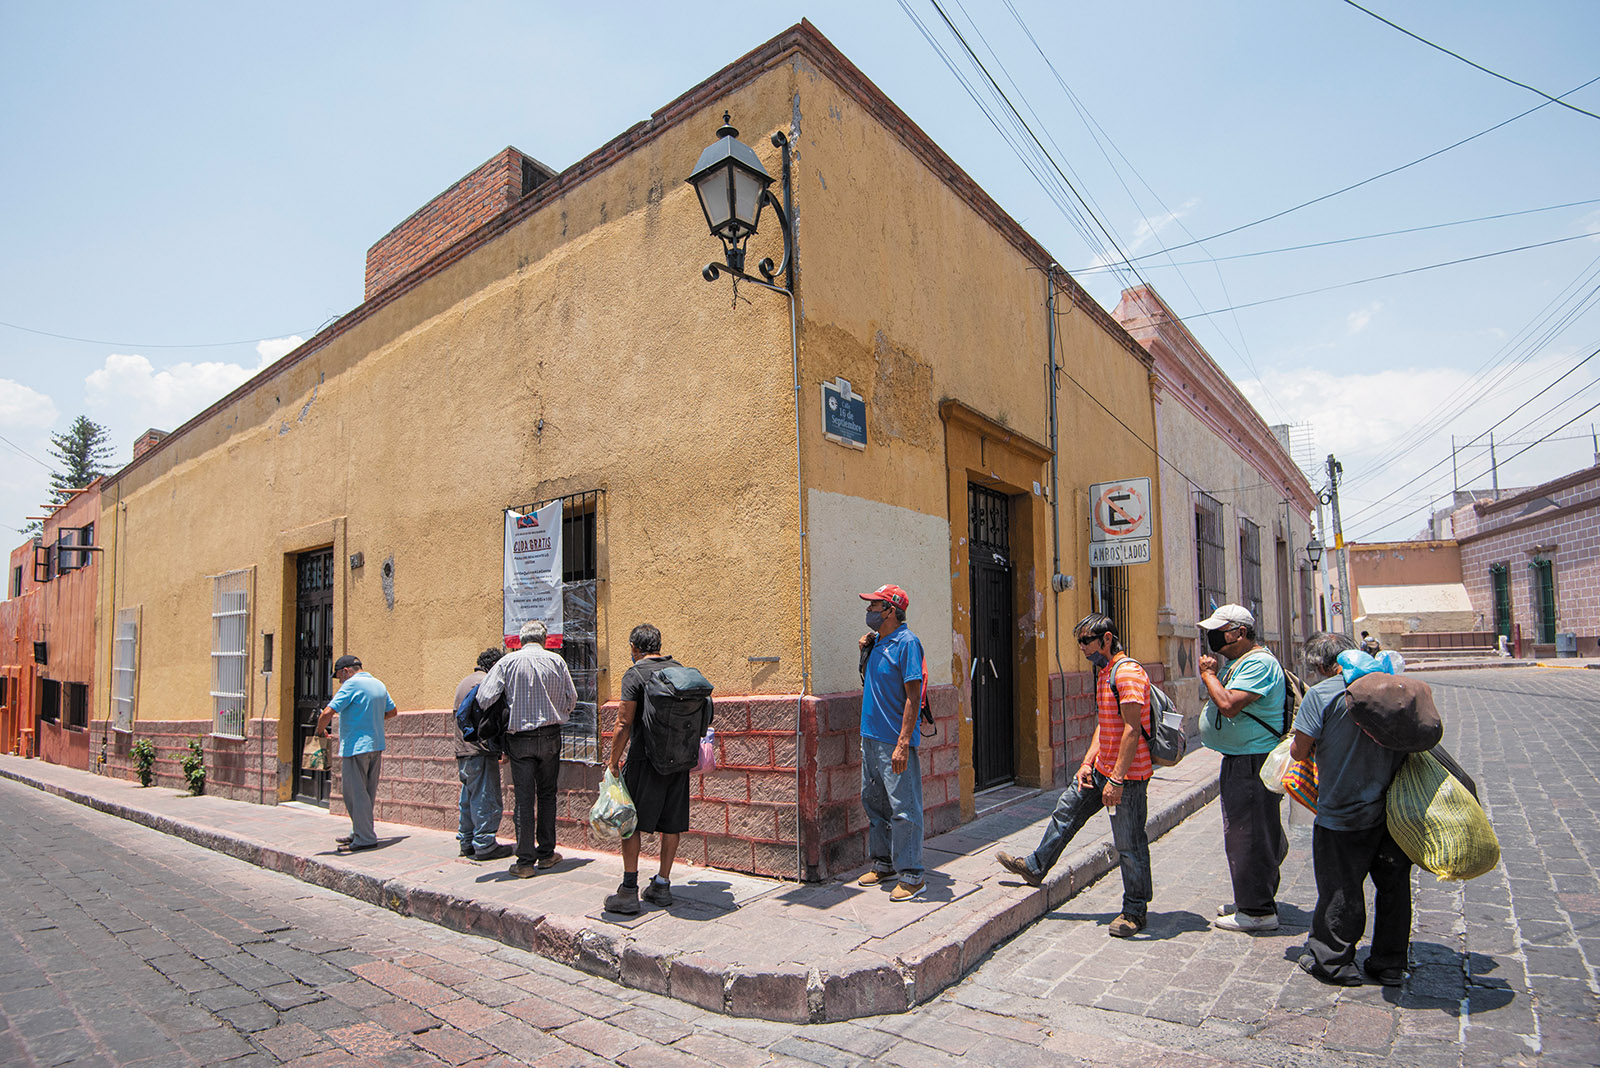 People lining up to receive free food during the coronavirus pandemic, Querétaro, Mexico